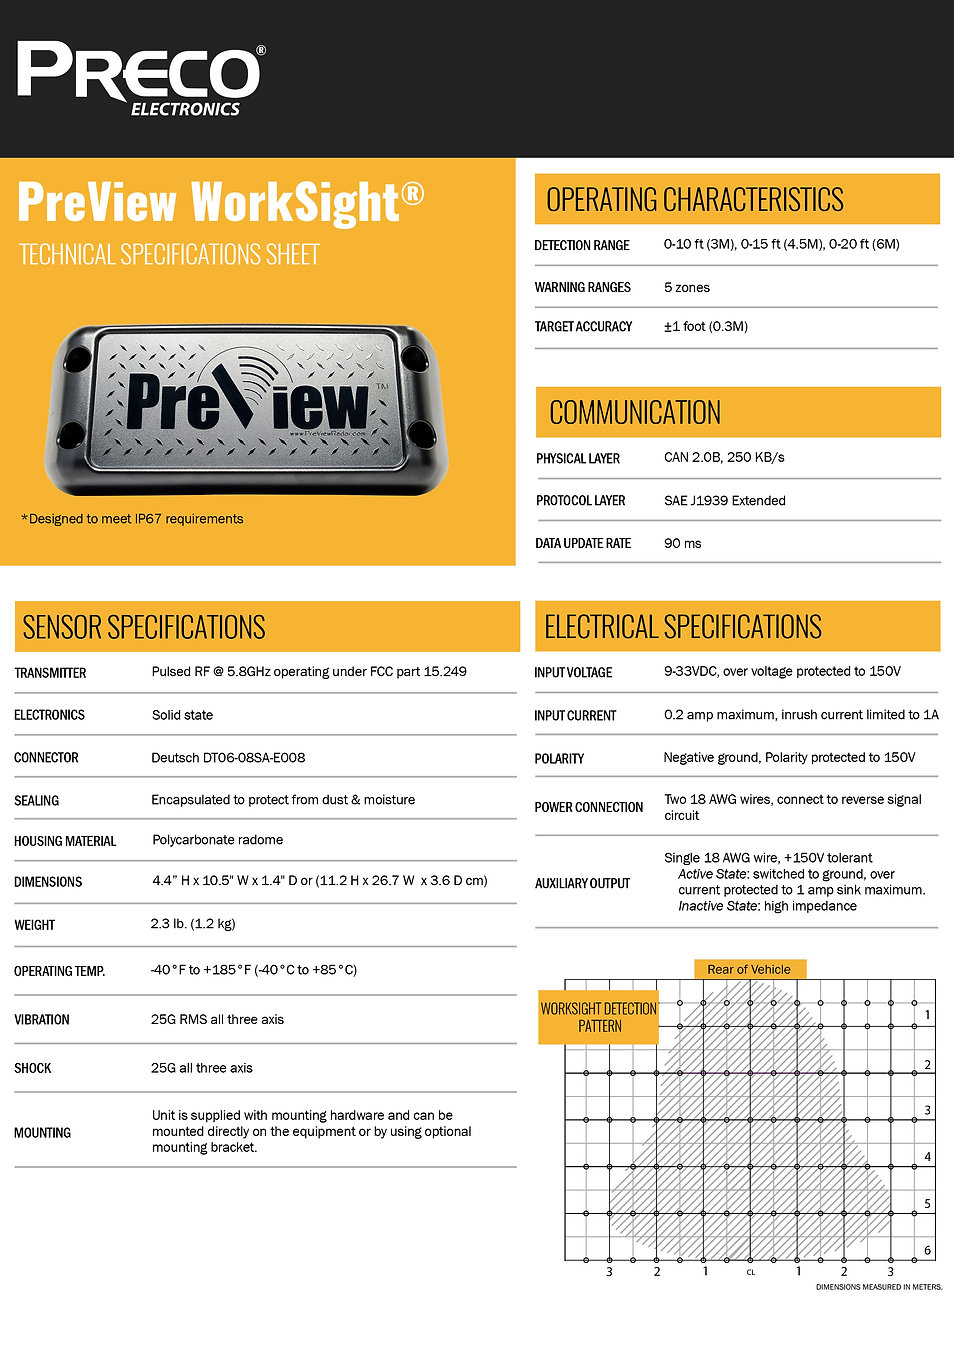 PreView-WorkSight-Data-Sheet.jpg